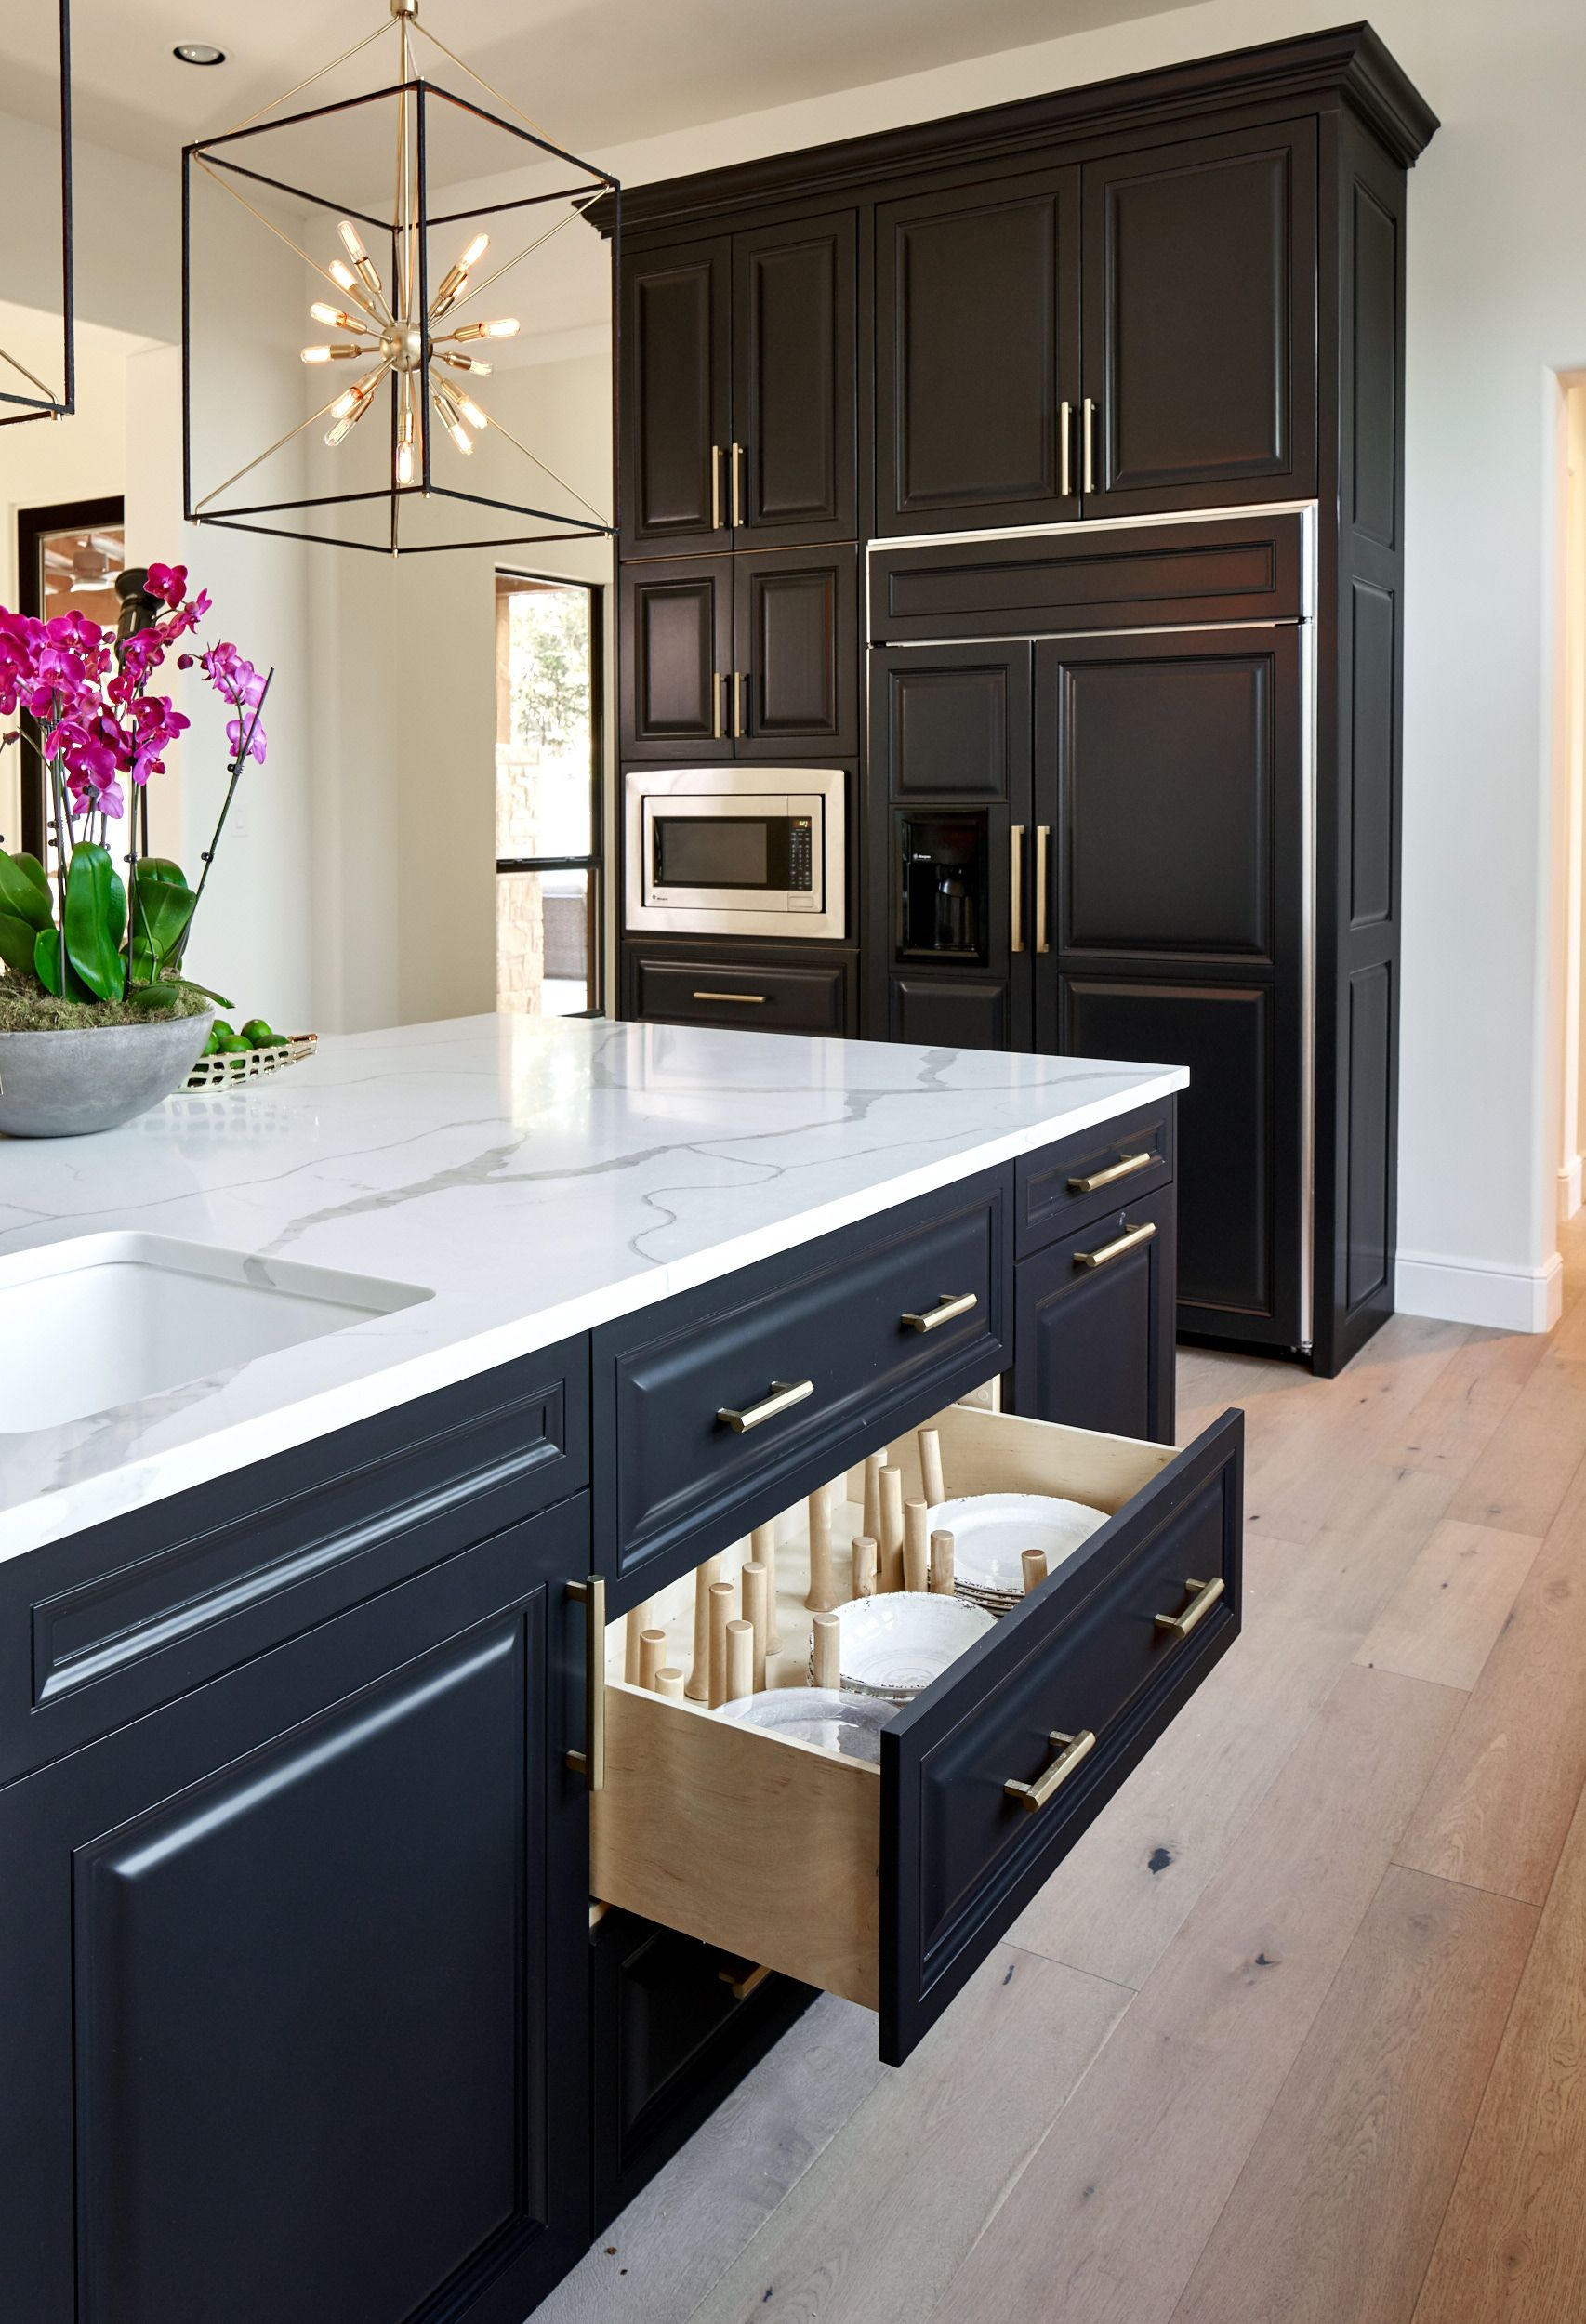 Black white and gold transitional kitchen with european oak floors custom peg drawer pullout for dishes also trends we  re betting will be huge diy decor rh pinterest